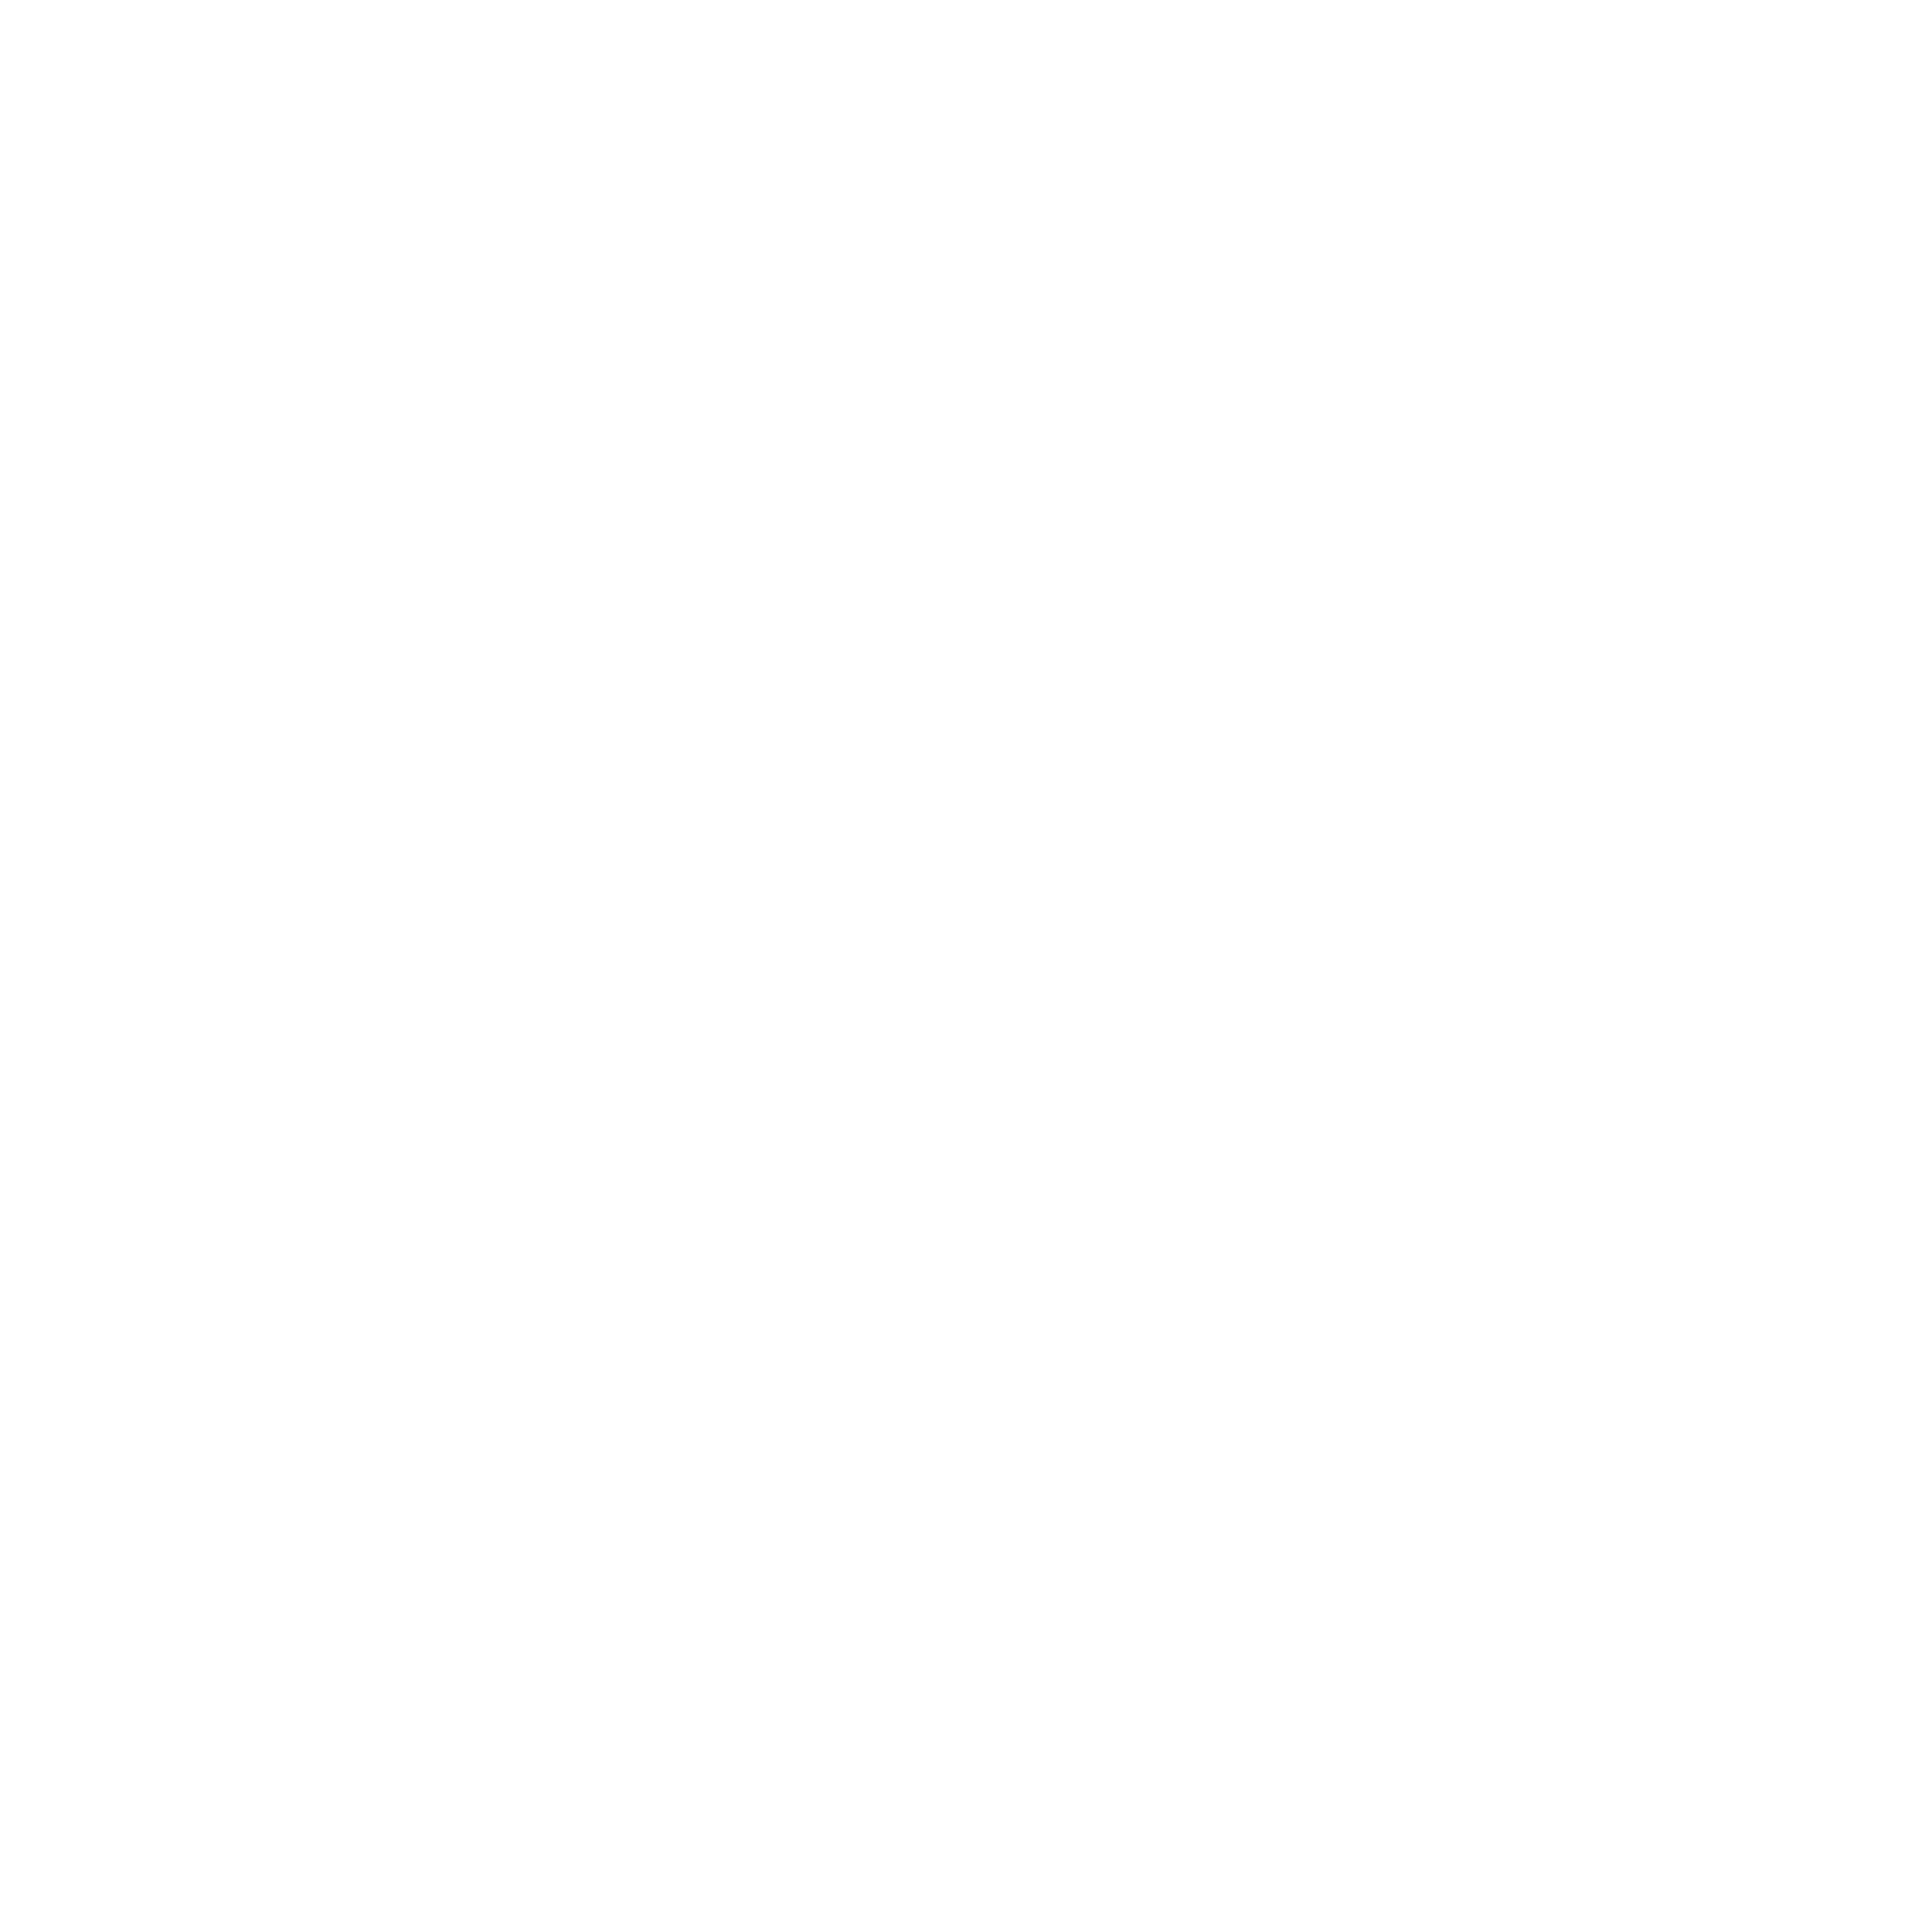 Erik The Photographer